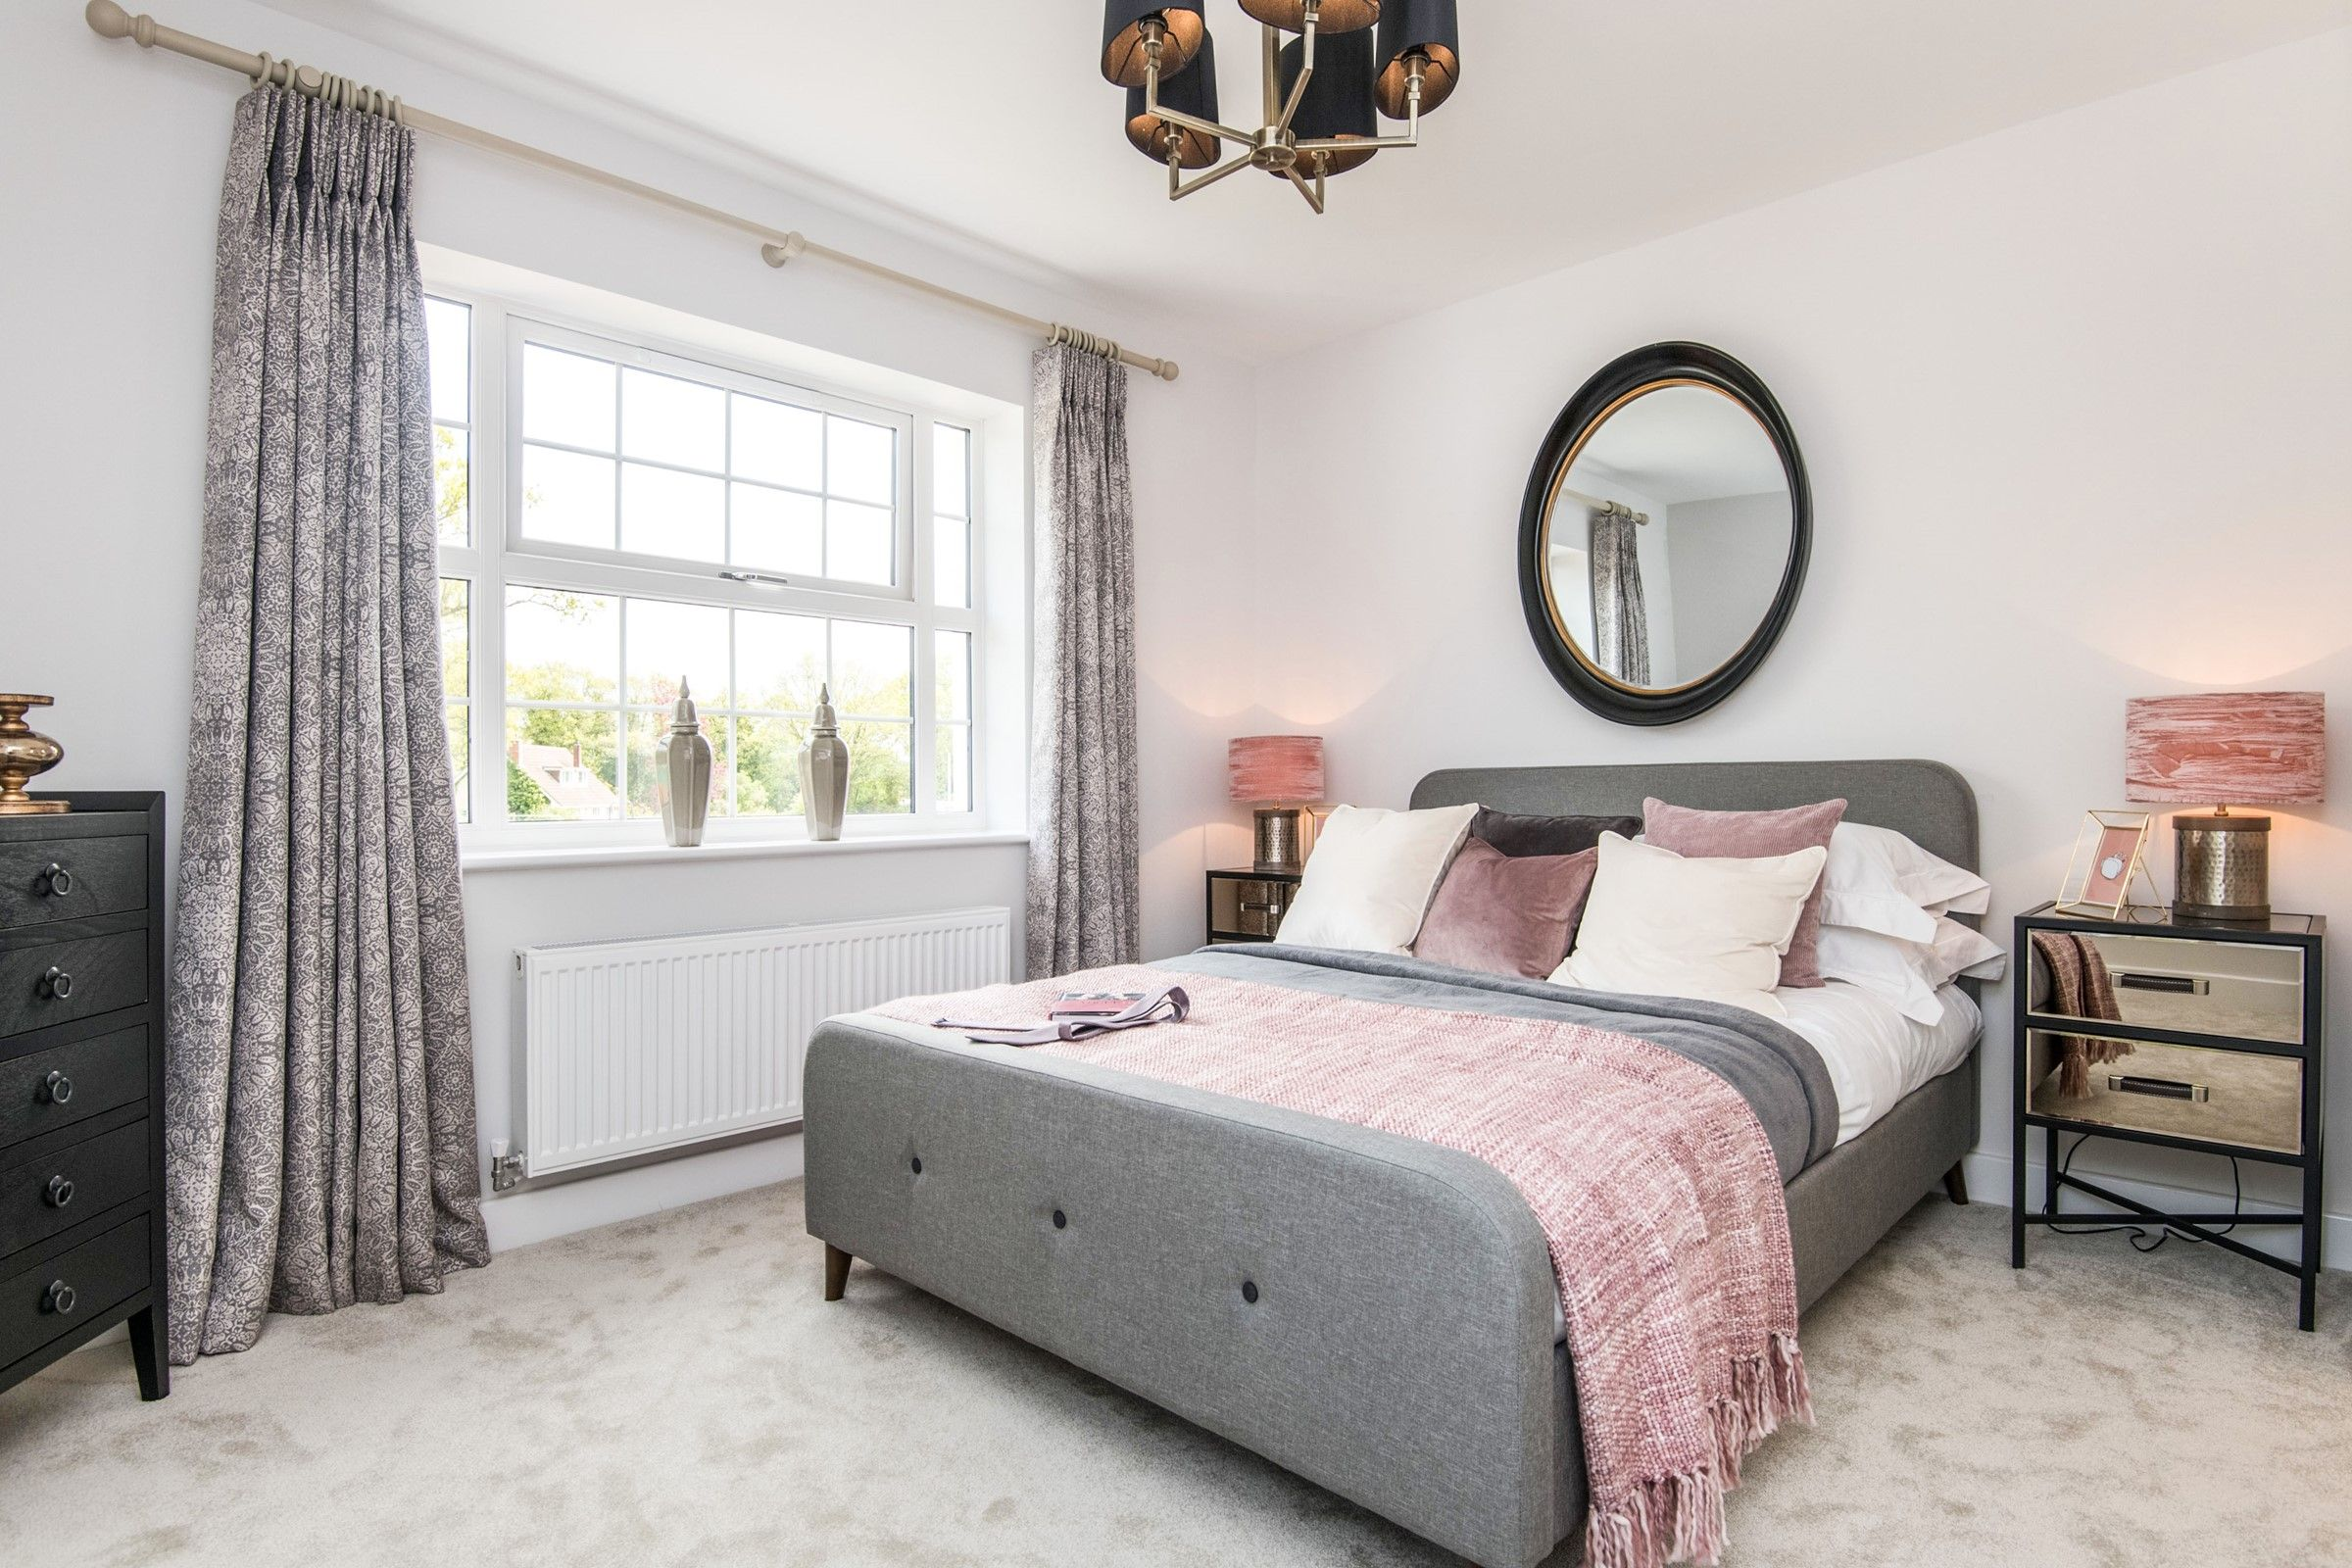 Blush Coral And Grey Master Bedroom With Black Furniture